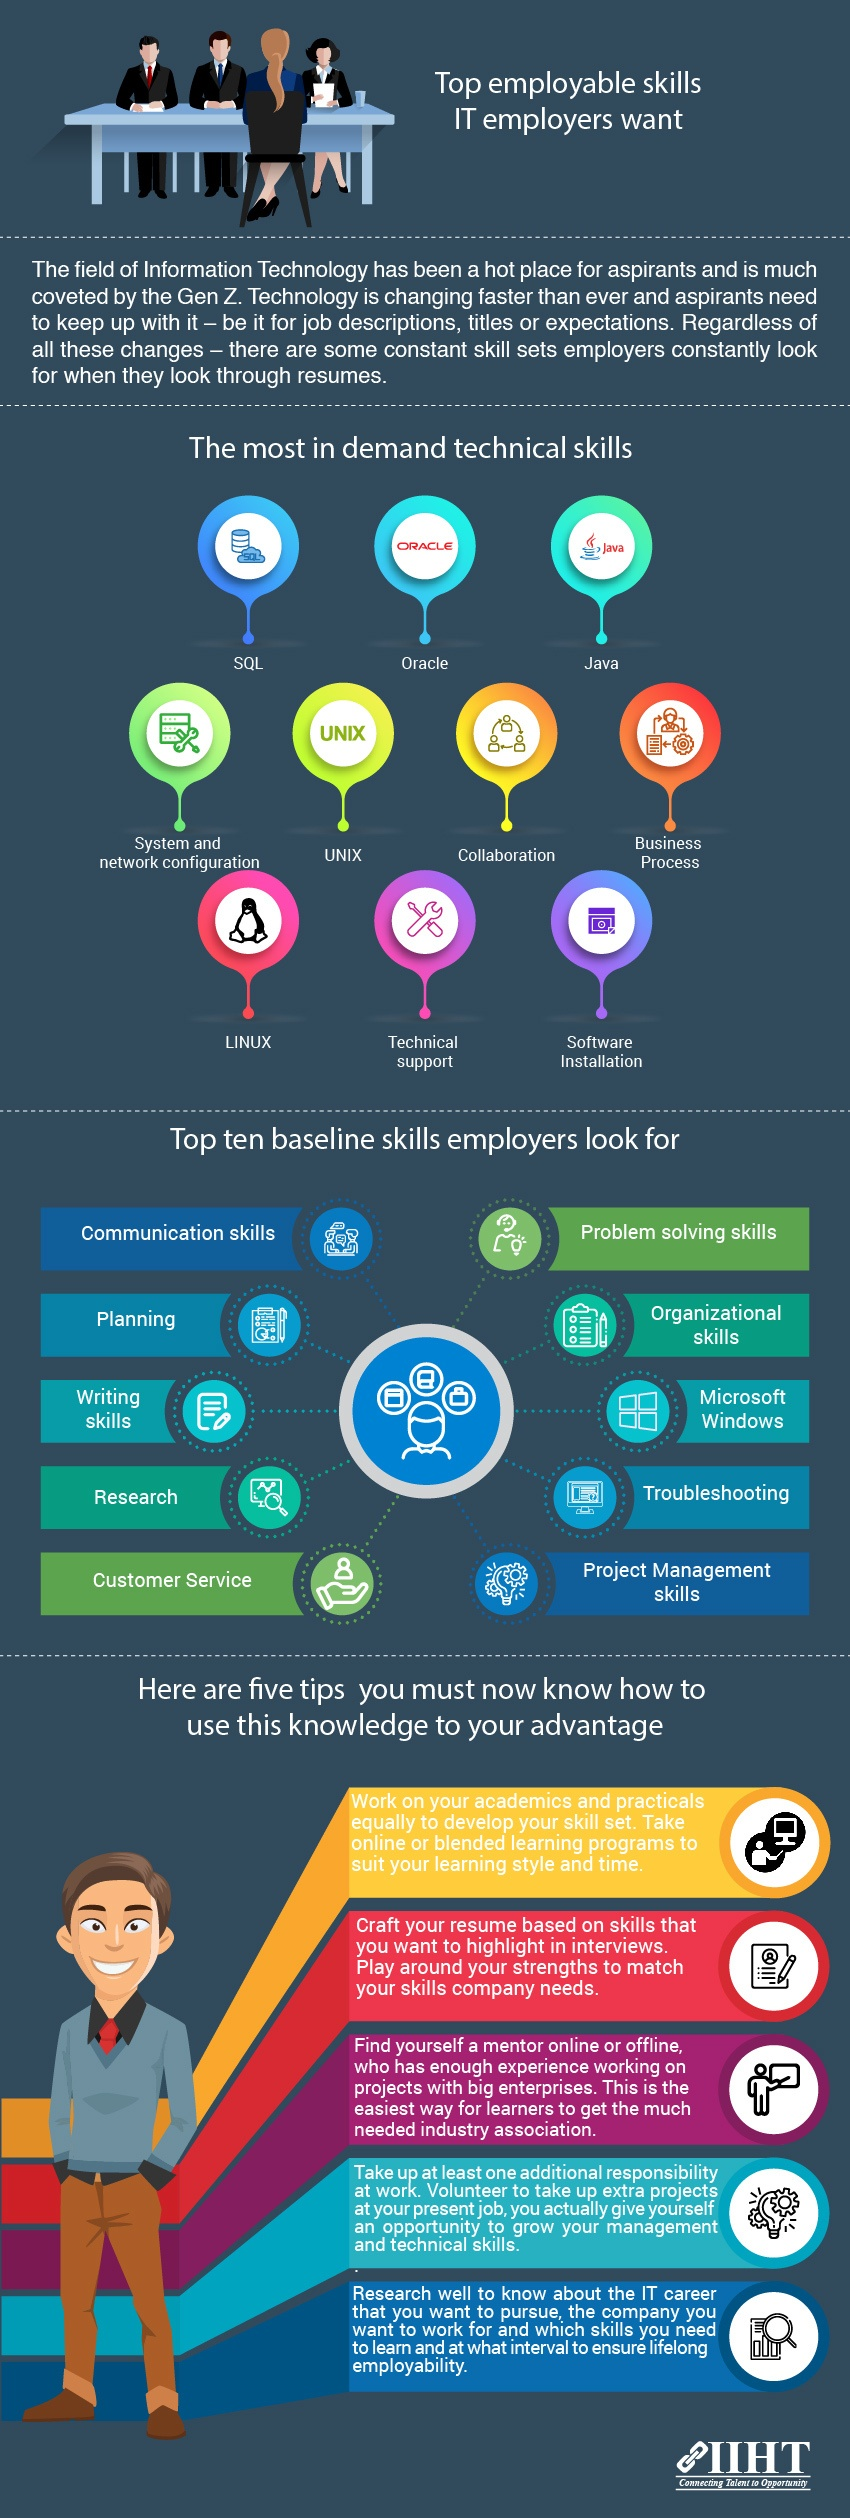 Top Employable Skills In IT Recruitment